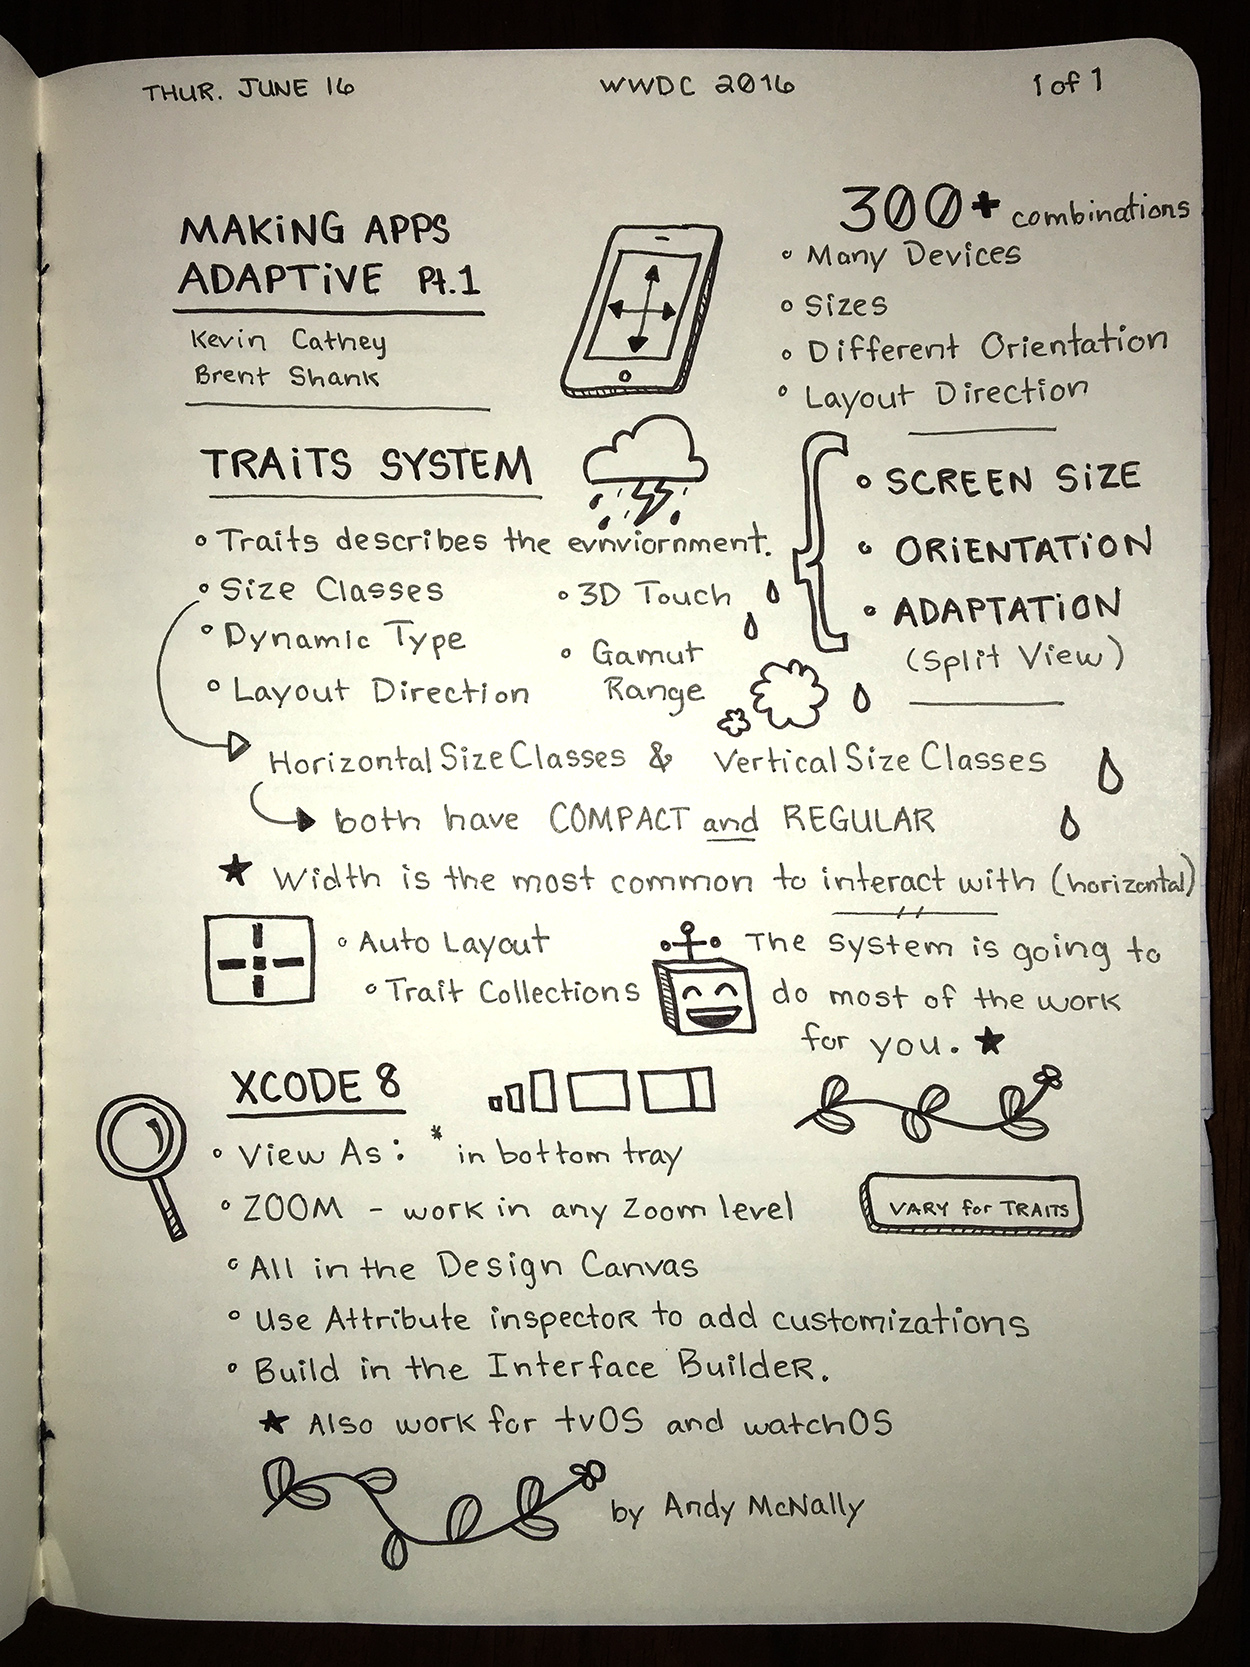 WWDC sketchnotes - Making Apps Adaptive Pt. 1